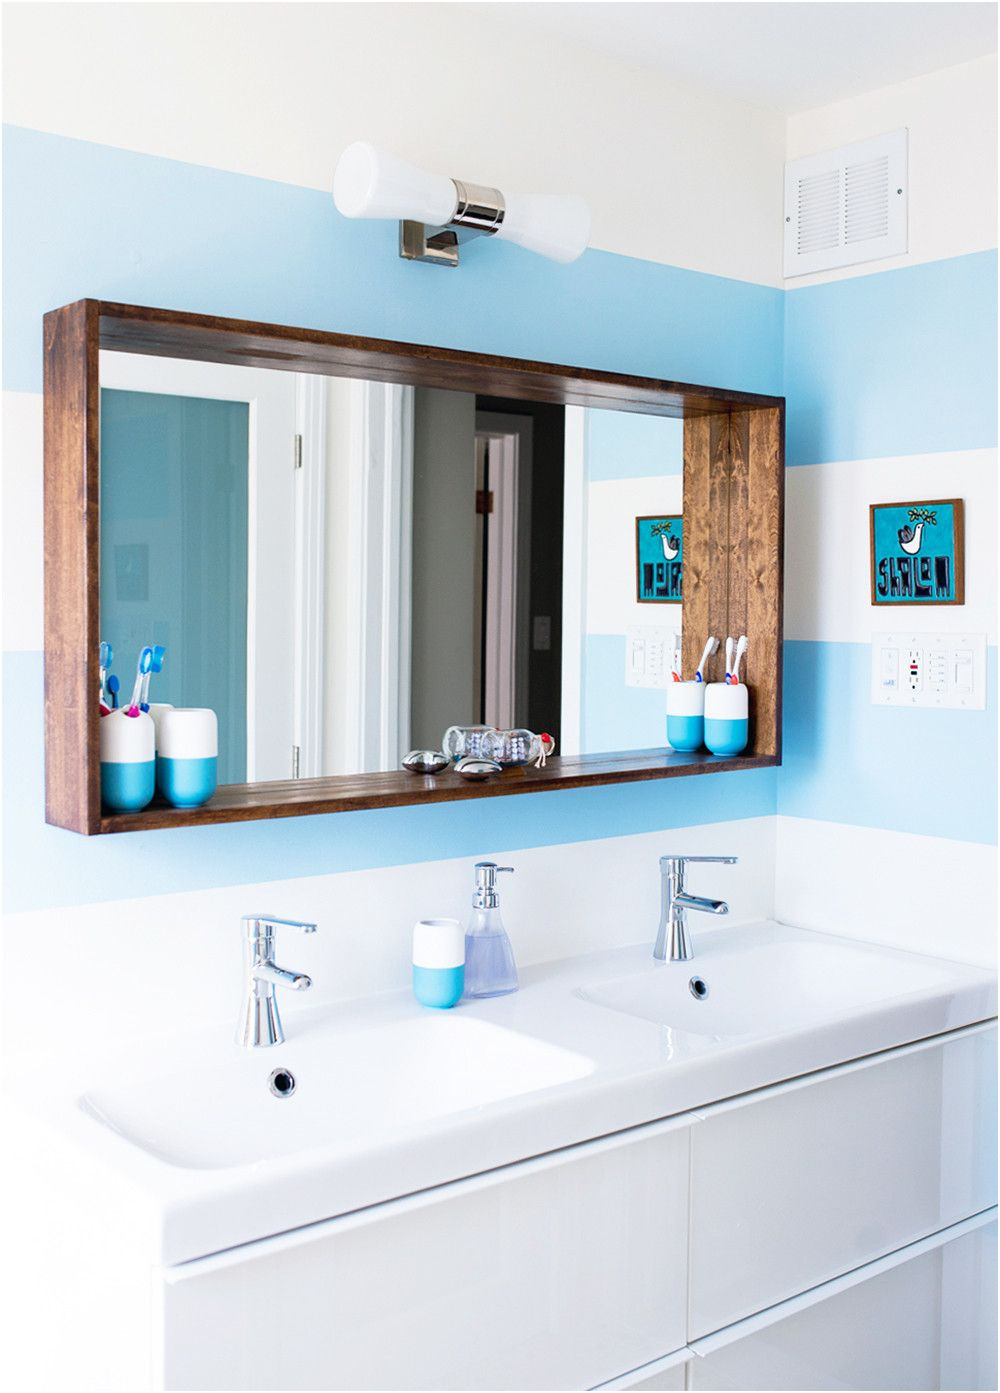 Unique Frame Kits for Large Bathroom Mirrors